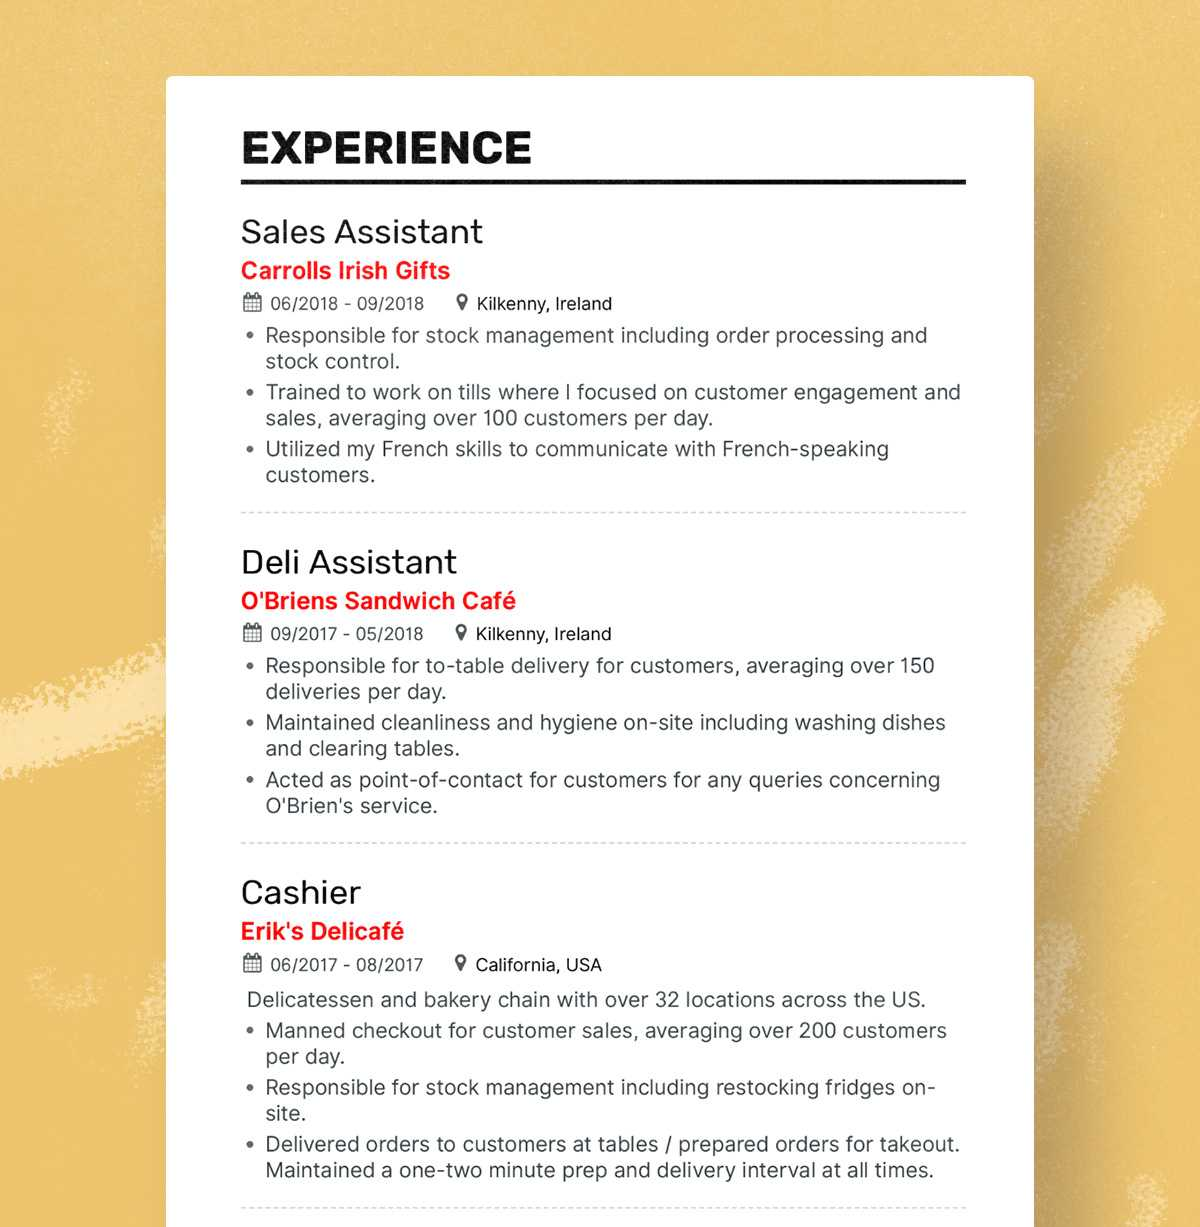 the best fresher resume formats and samples objectives for fresh graduates hannah Resume Best Resume Objectives For Fresh Graduates